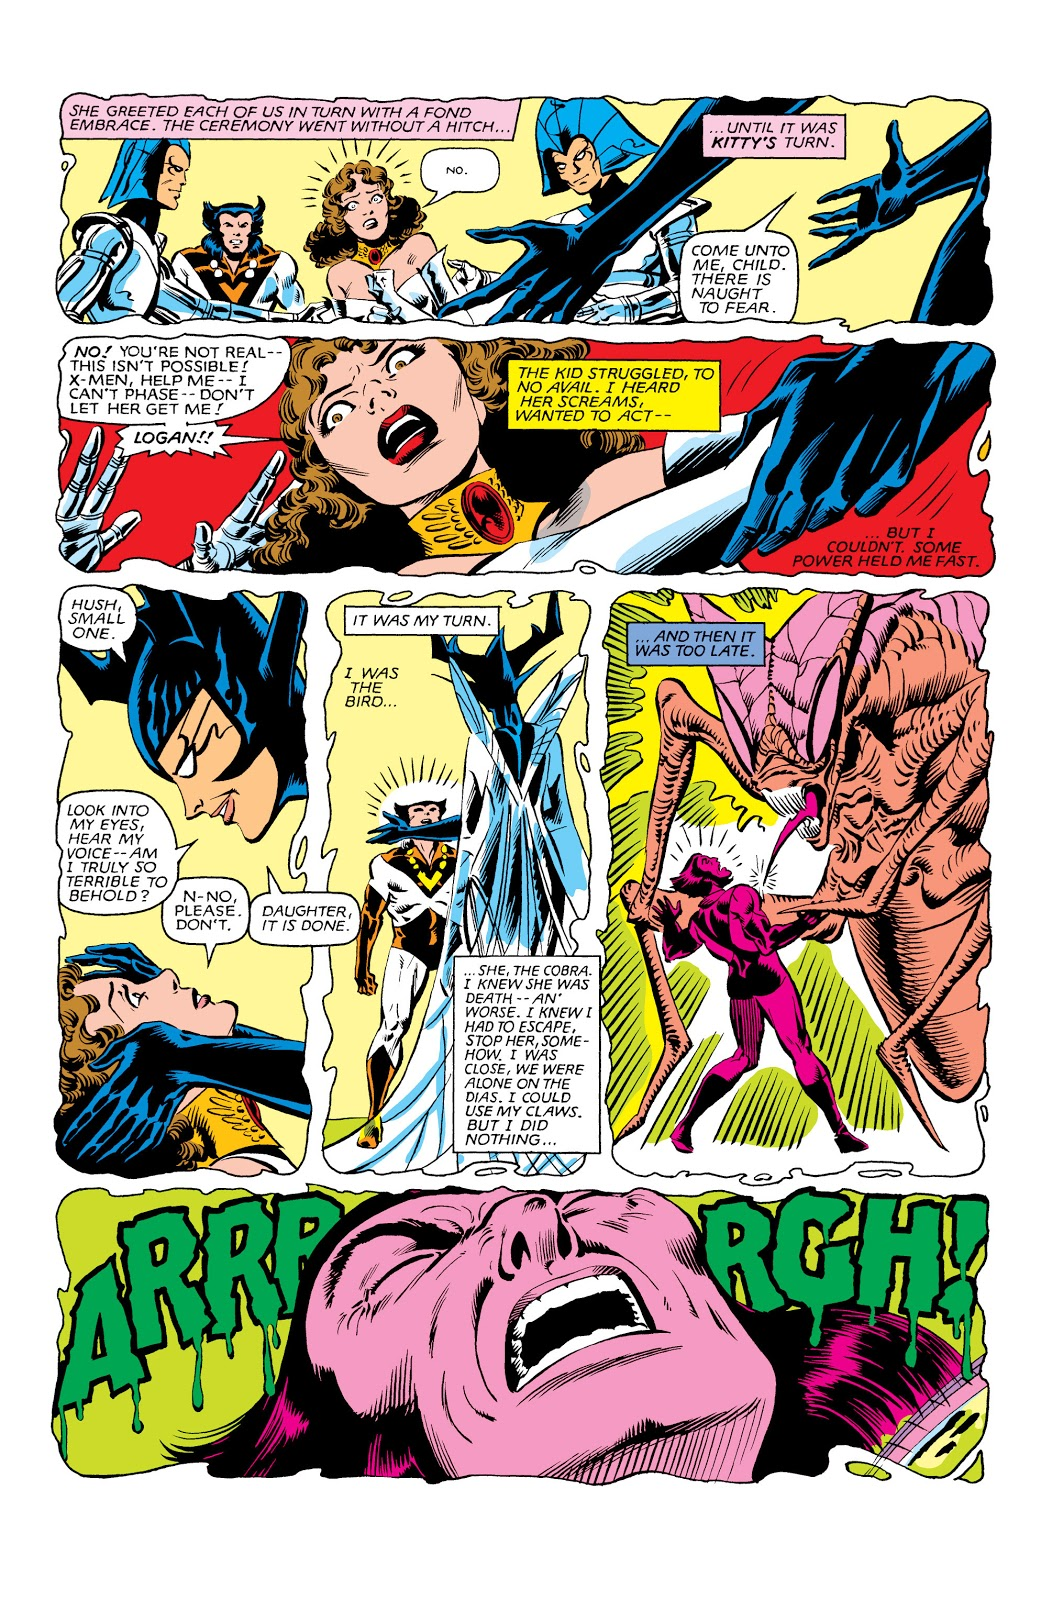 In 'Uncanny X-Men' (1963) #162, in a flashback, it is Wolverine's turn. He realizes the doll is actually the Brood Queen granting the X-Men the gift.